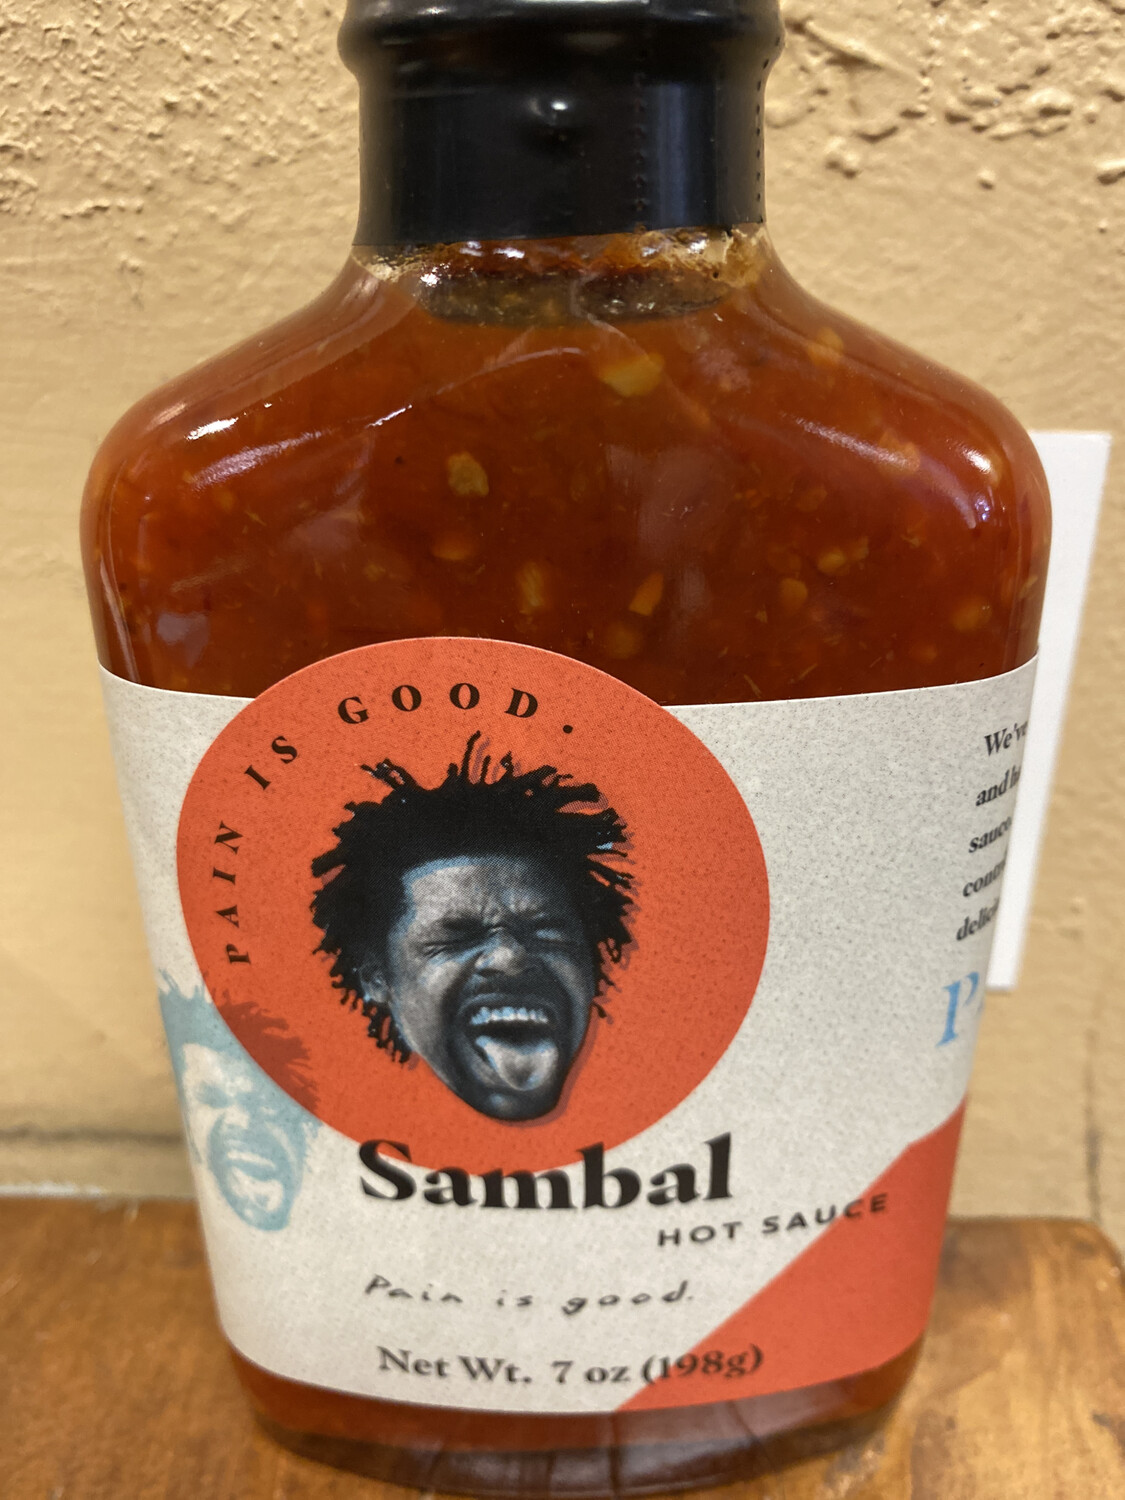 Pain Is Good Sambal